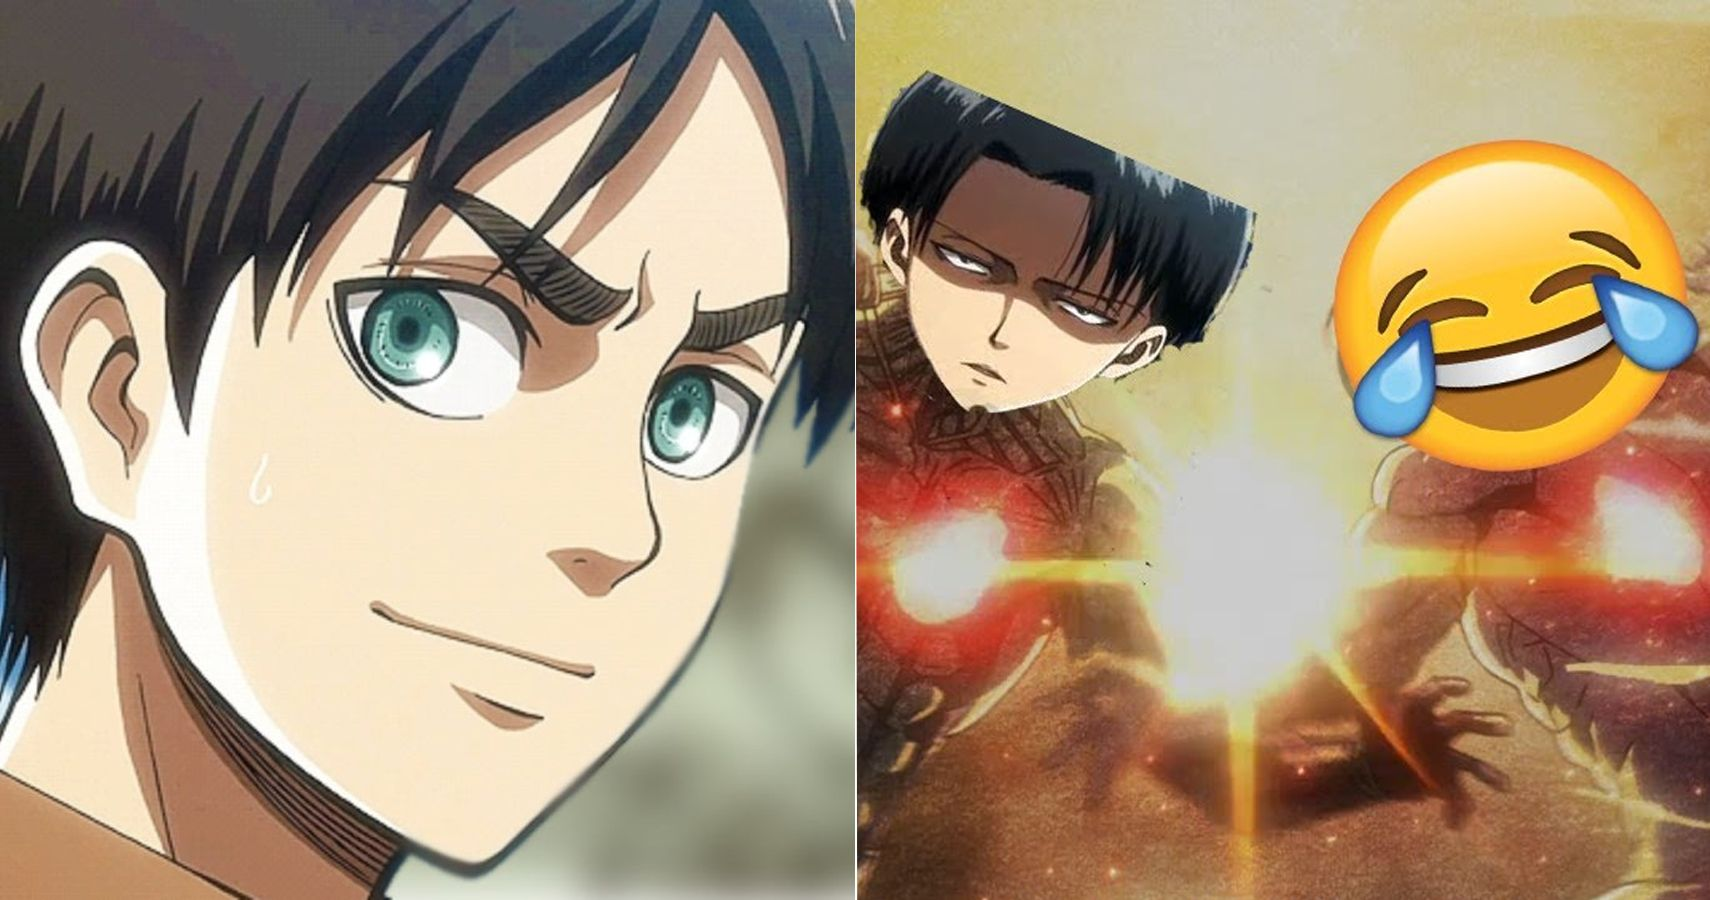 No U Anime Meme: 10 Hilarious Attack On Titan Memes Only True Fans Will Love